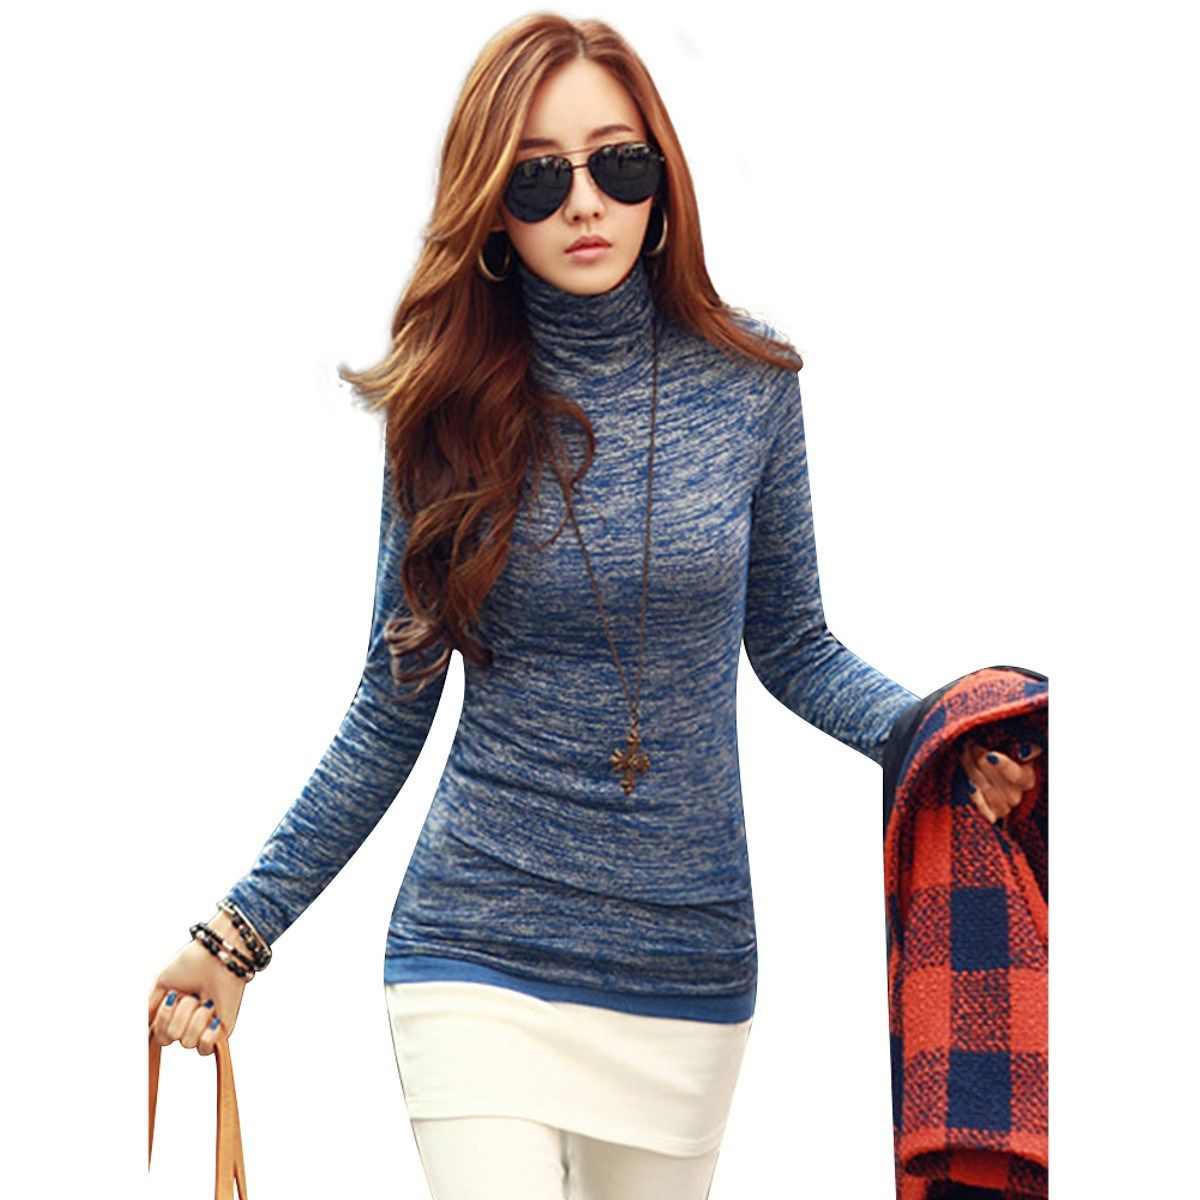 Flannel shirt plus size  Autumn Winter Women Knitted Sweaters Jumper Top Fashion Casual